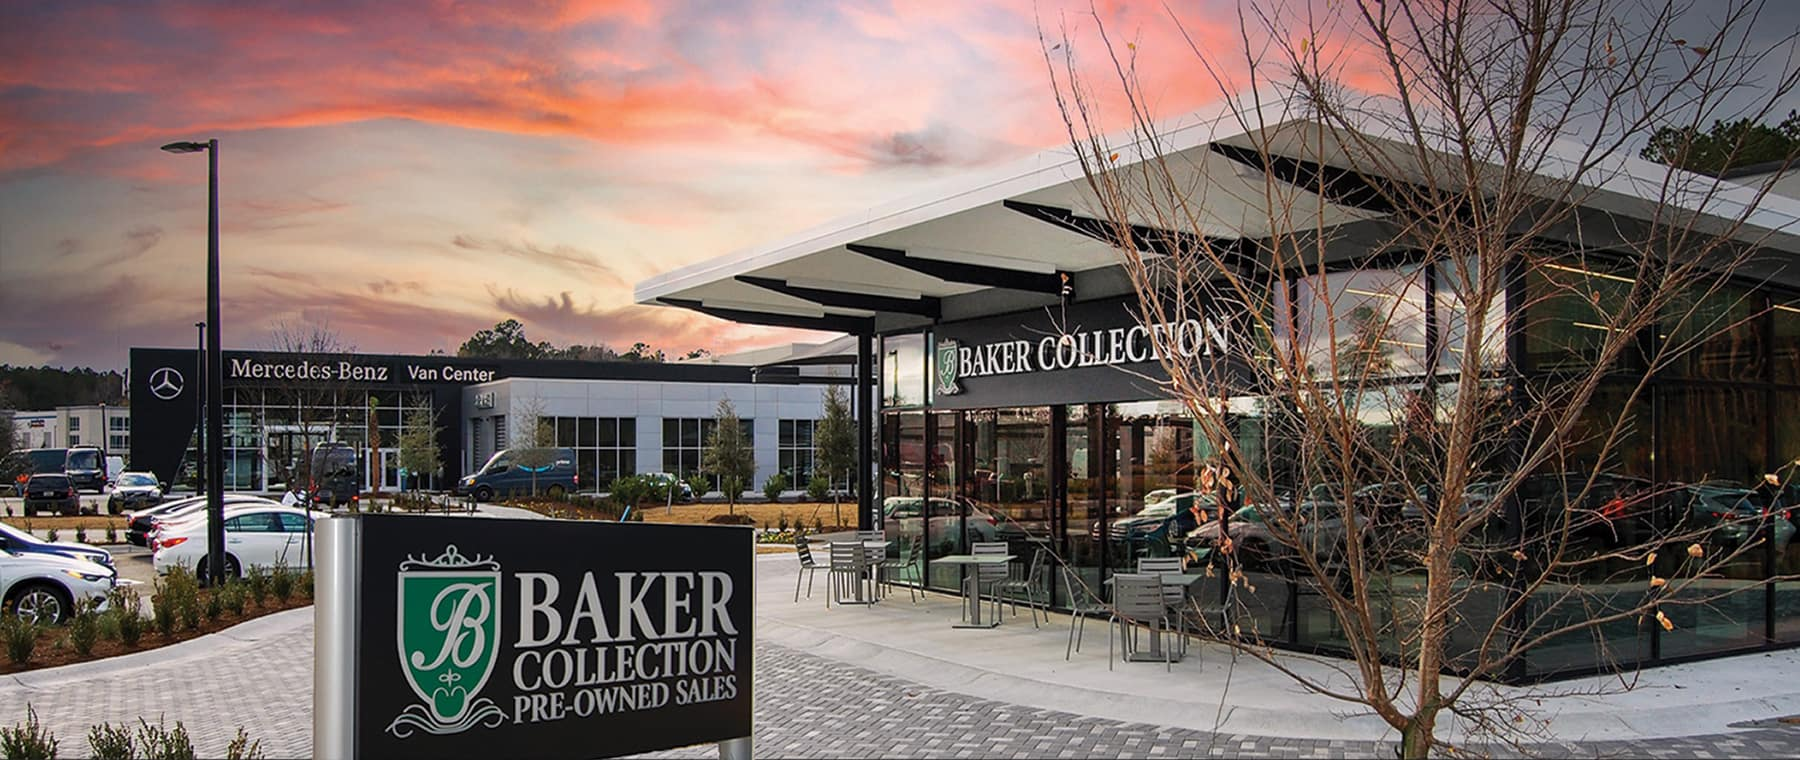 BAKER-COLLECTION-DEALER_1800x760_v2